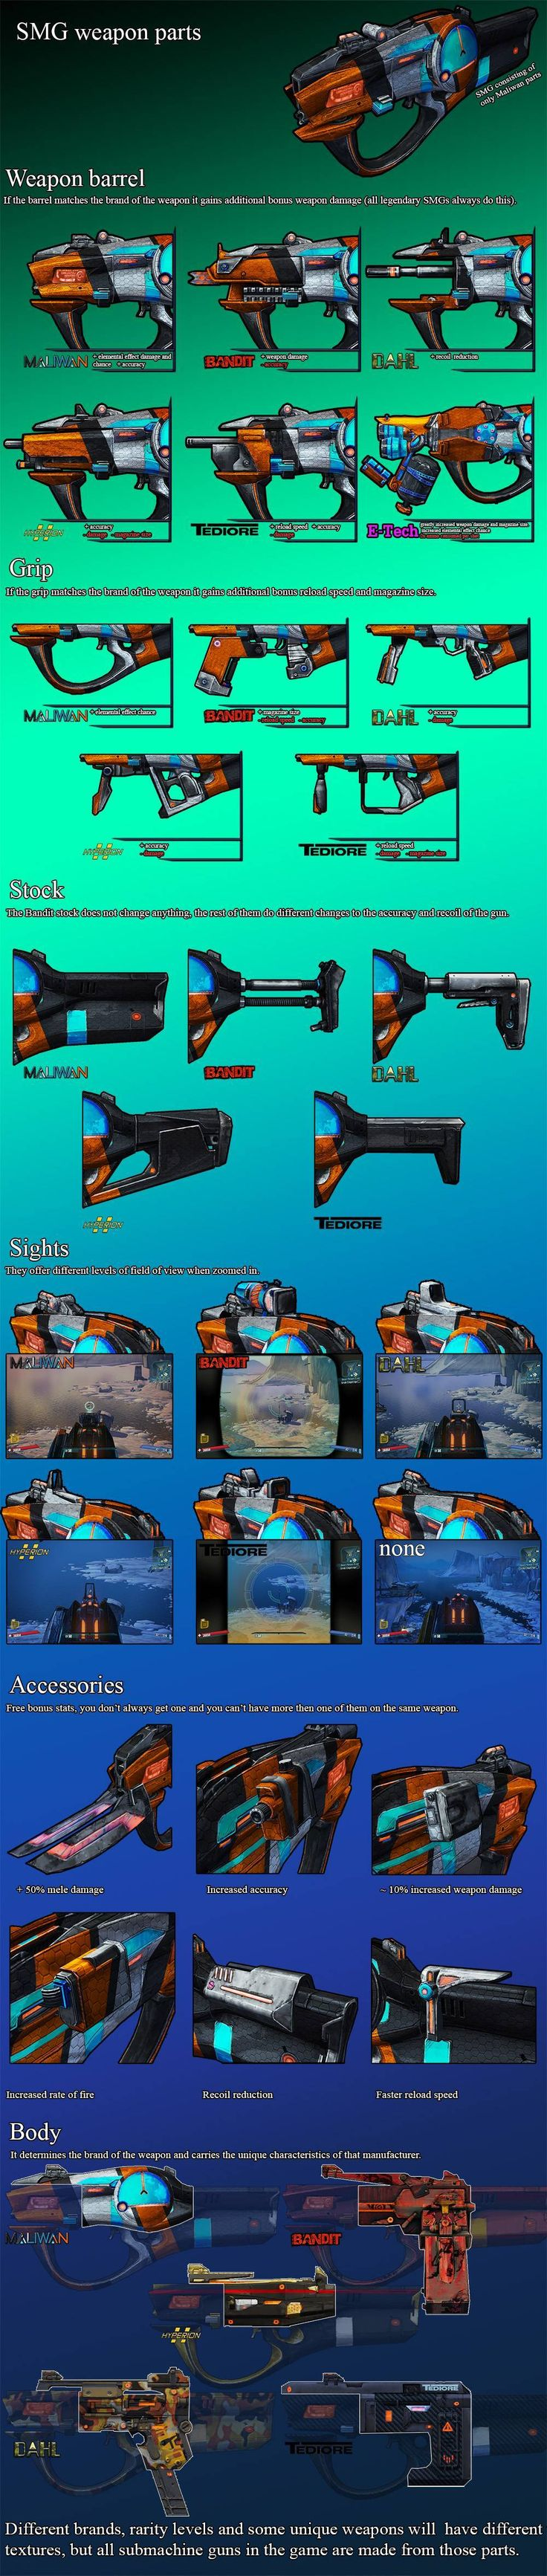 2797fae546c7e3cdec47c5cf7fb678f1--game-mechanics--guns Stilvolle Möbel Schaffrath Online Shop Dekorationen